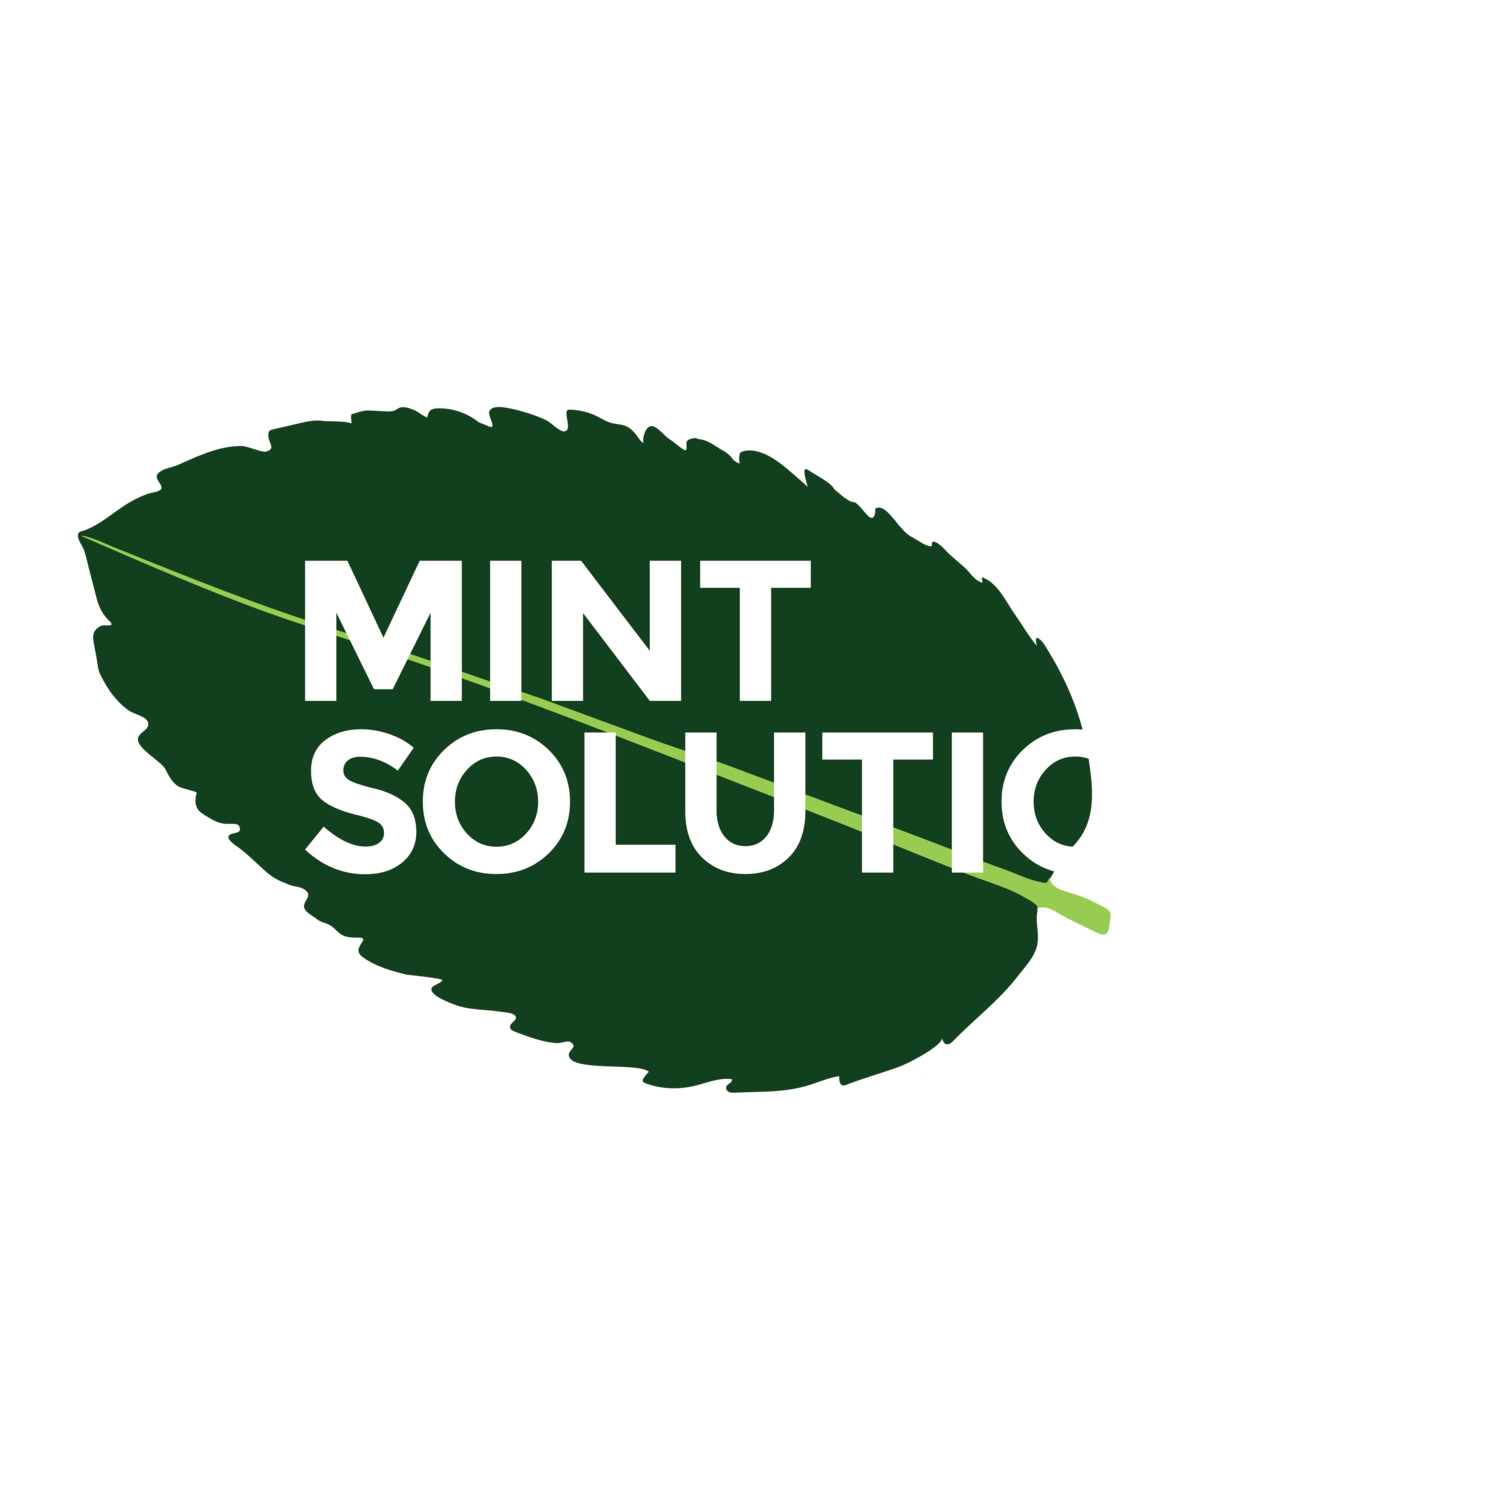 Mint Solutions Ltd